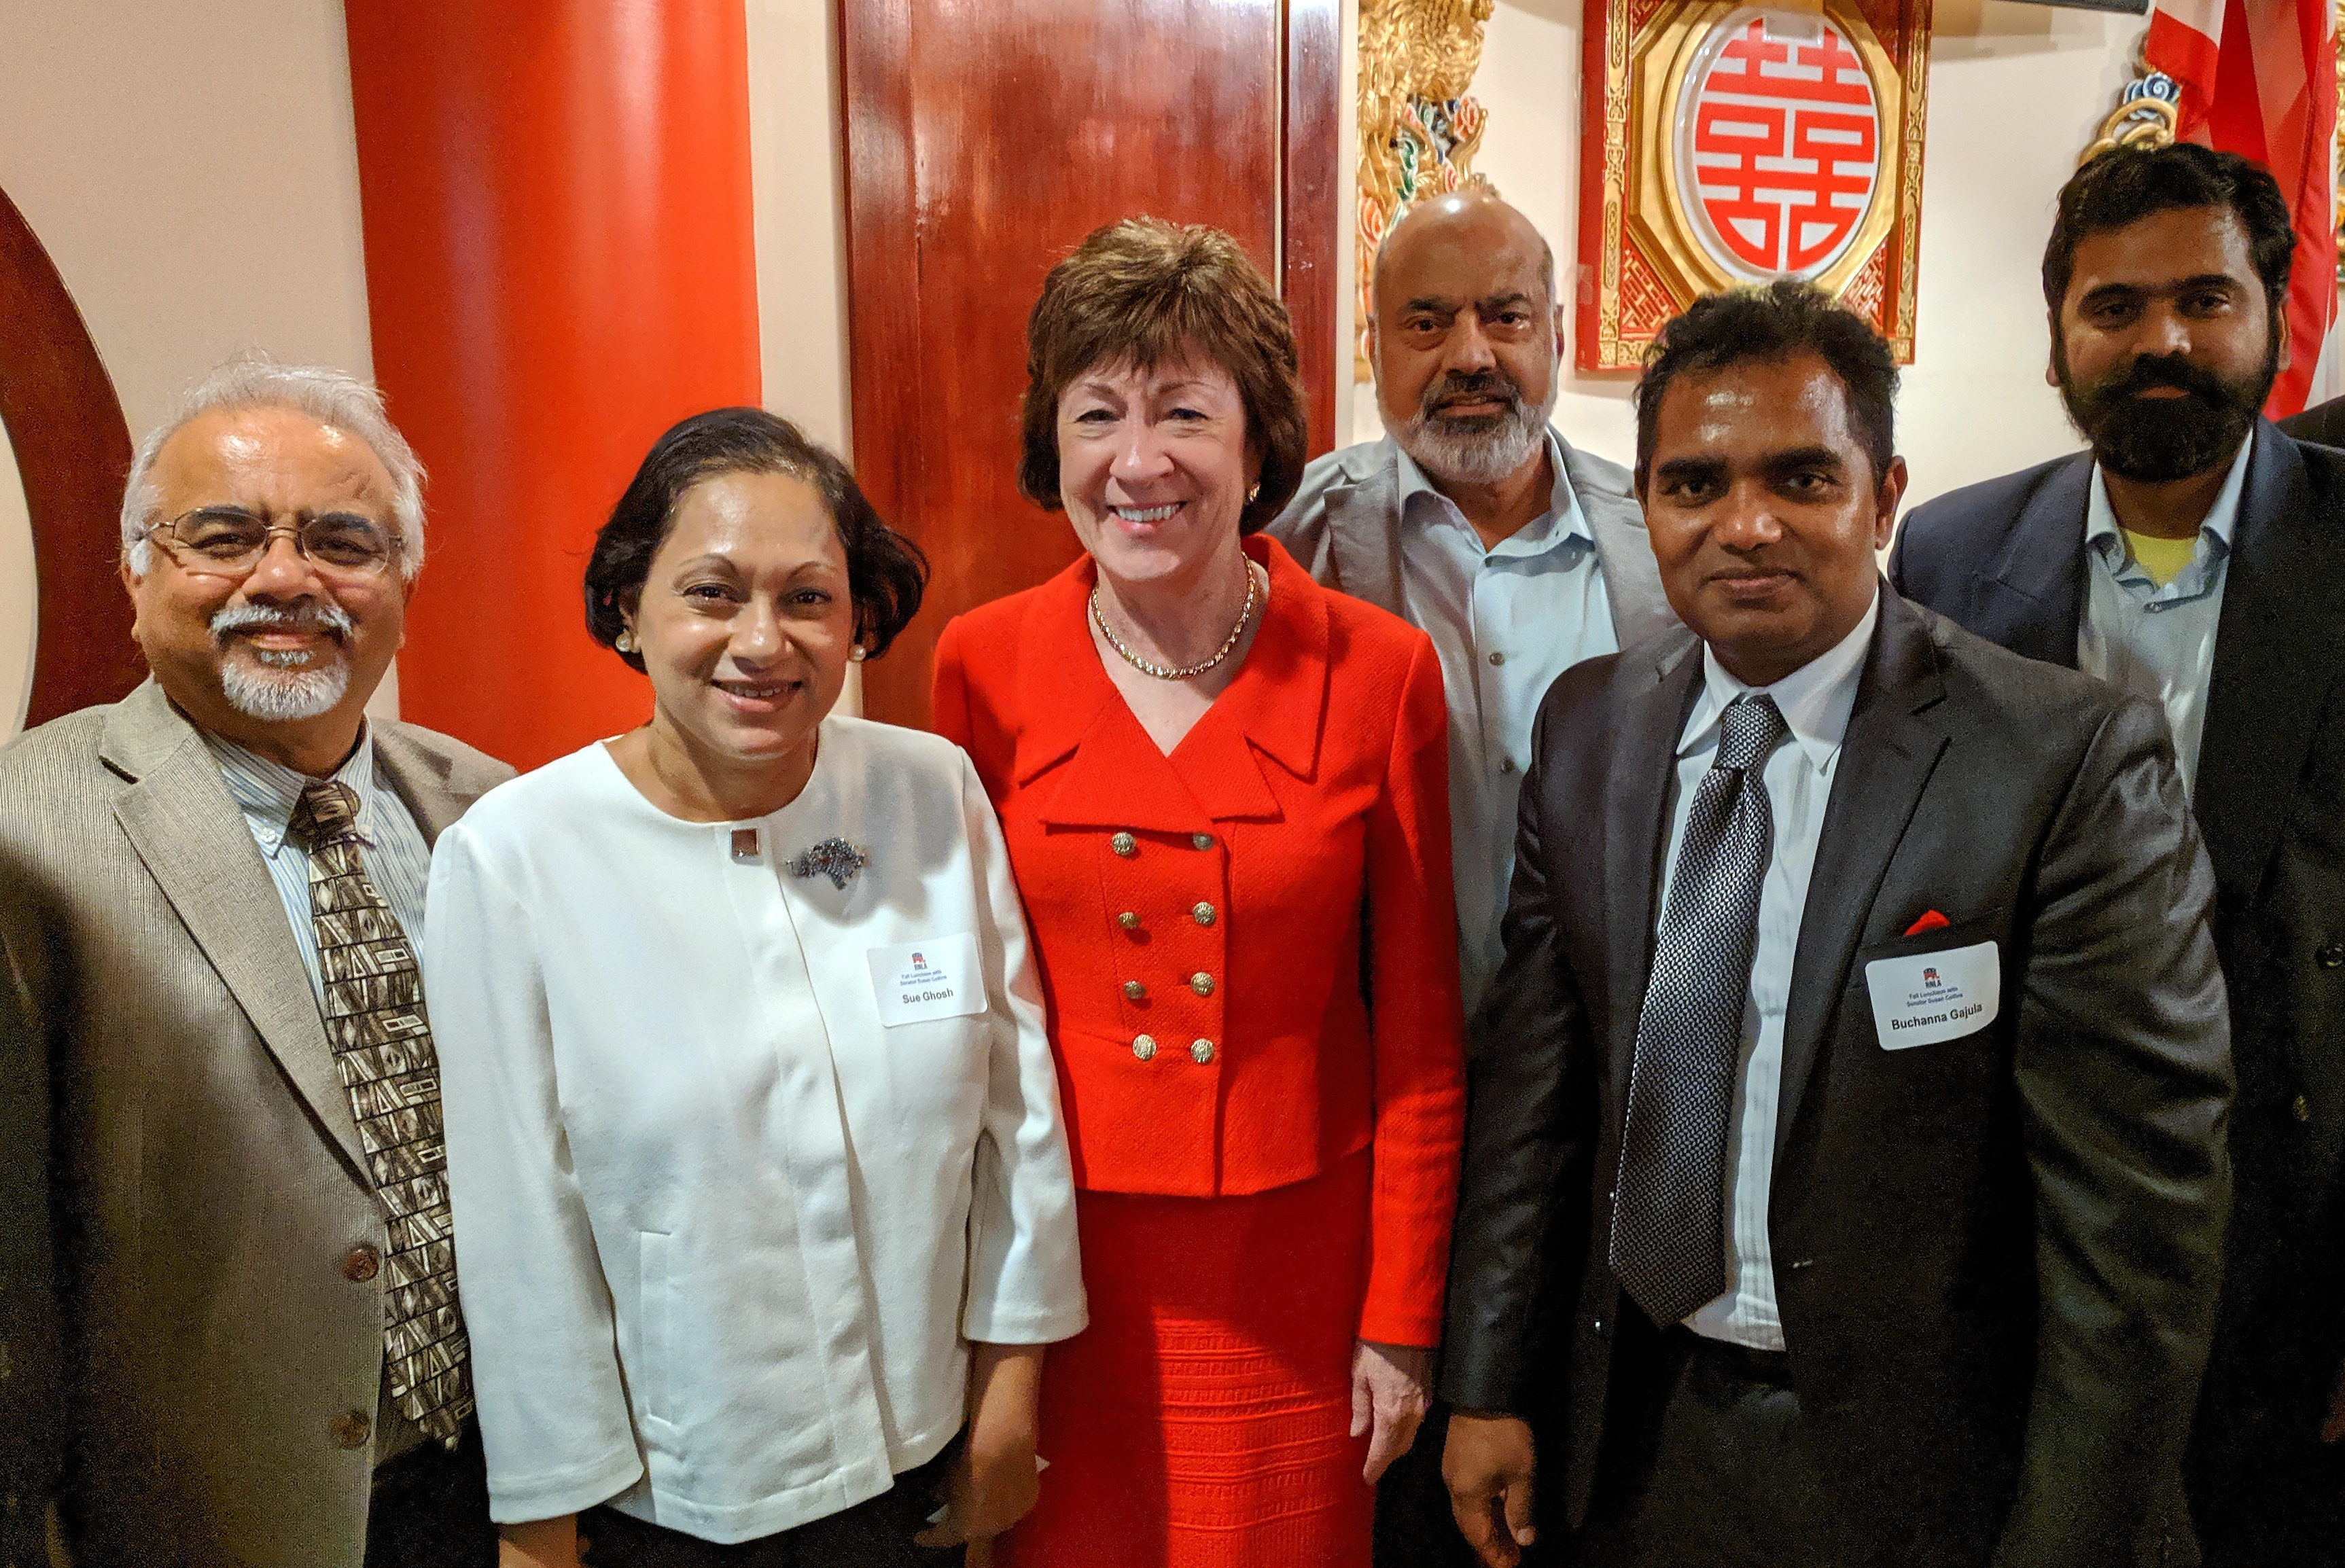 AMERICAN HINDU COALITION MEETS WITH SENATOR SUSAN COLLINS